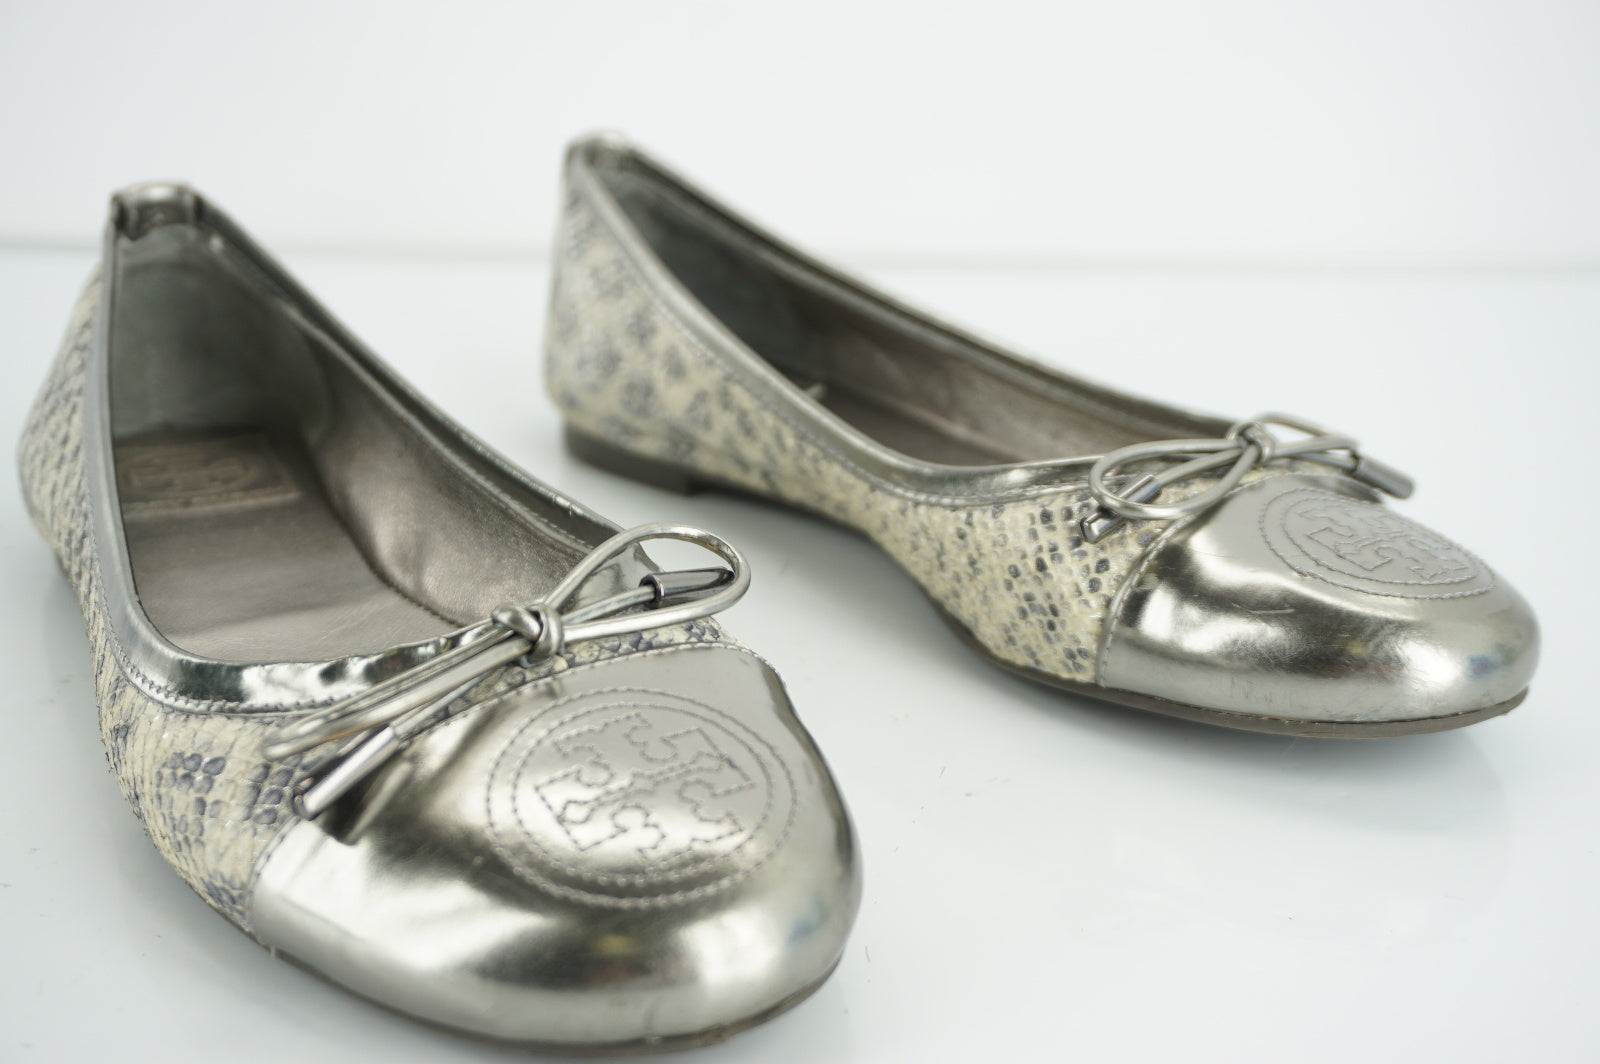 Tory Burch Womens Claremont Ballet Flat Silver Snake Leather Size 7